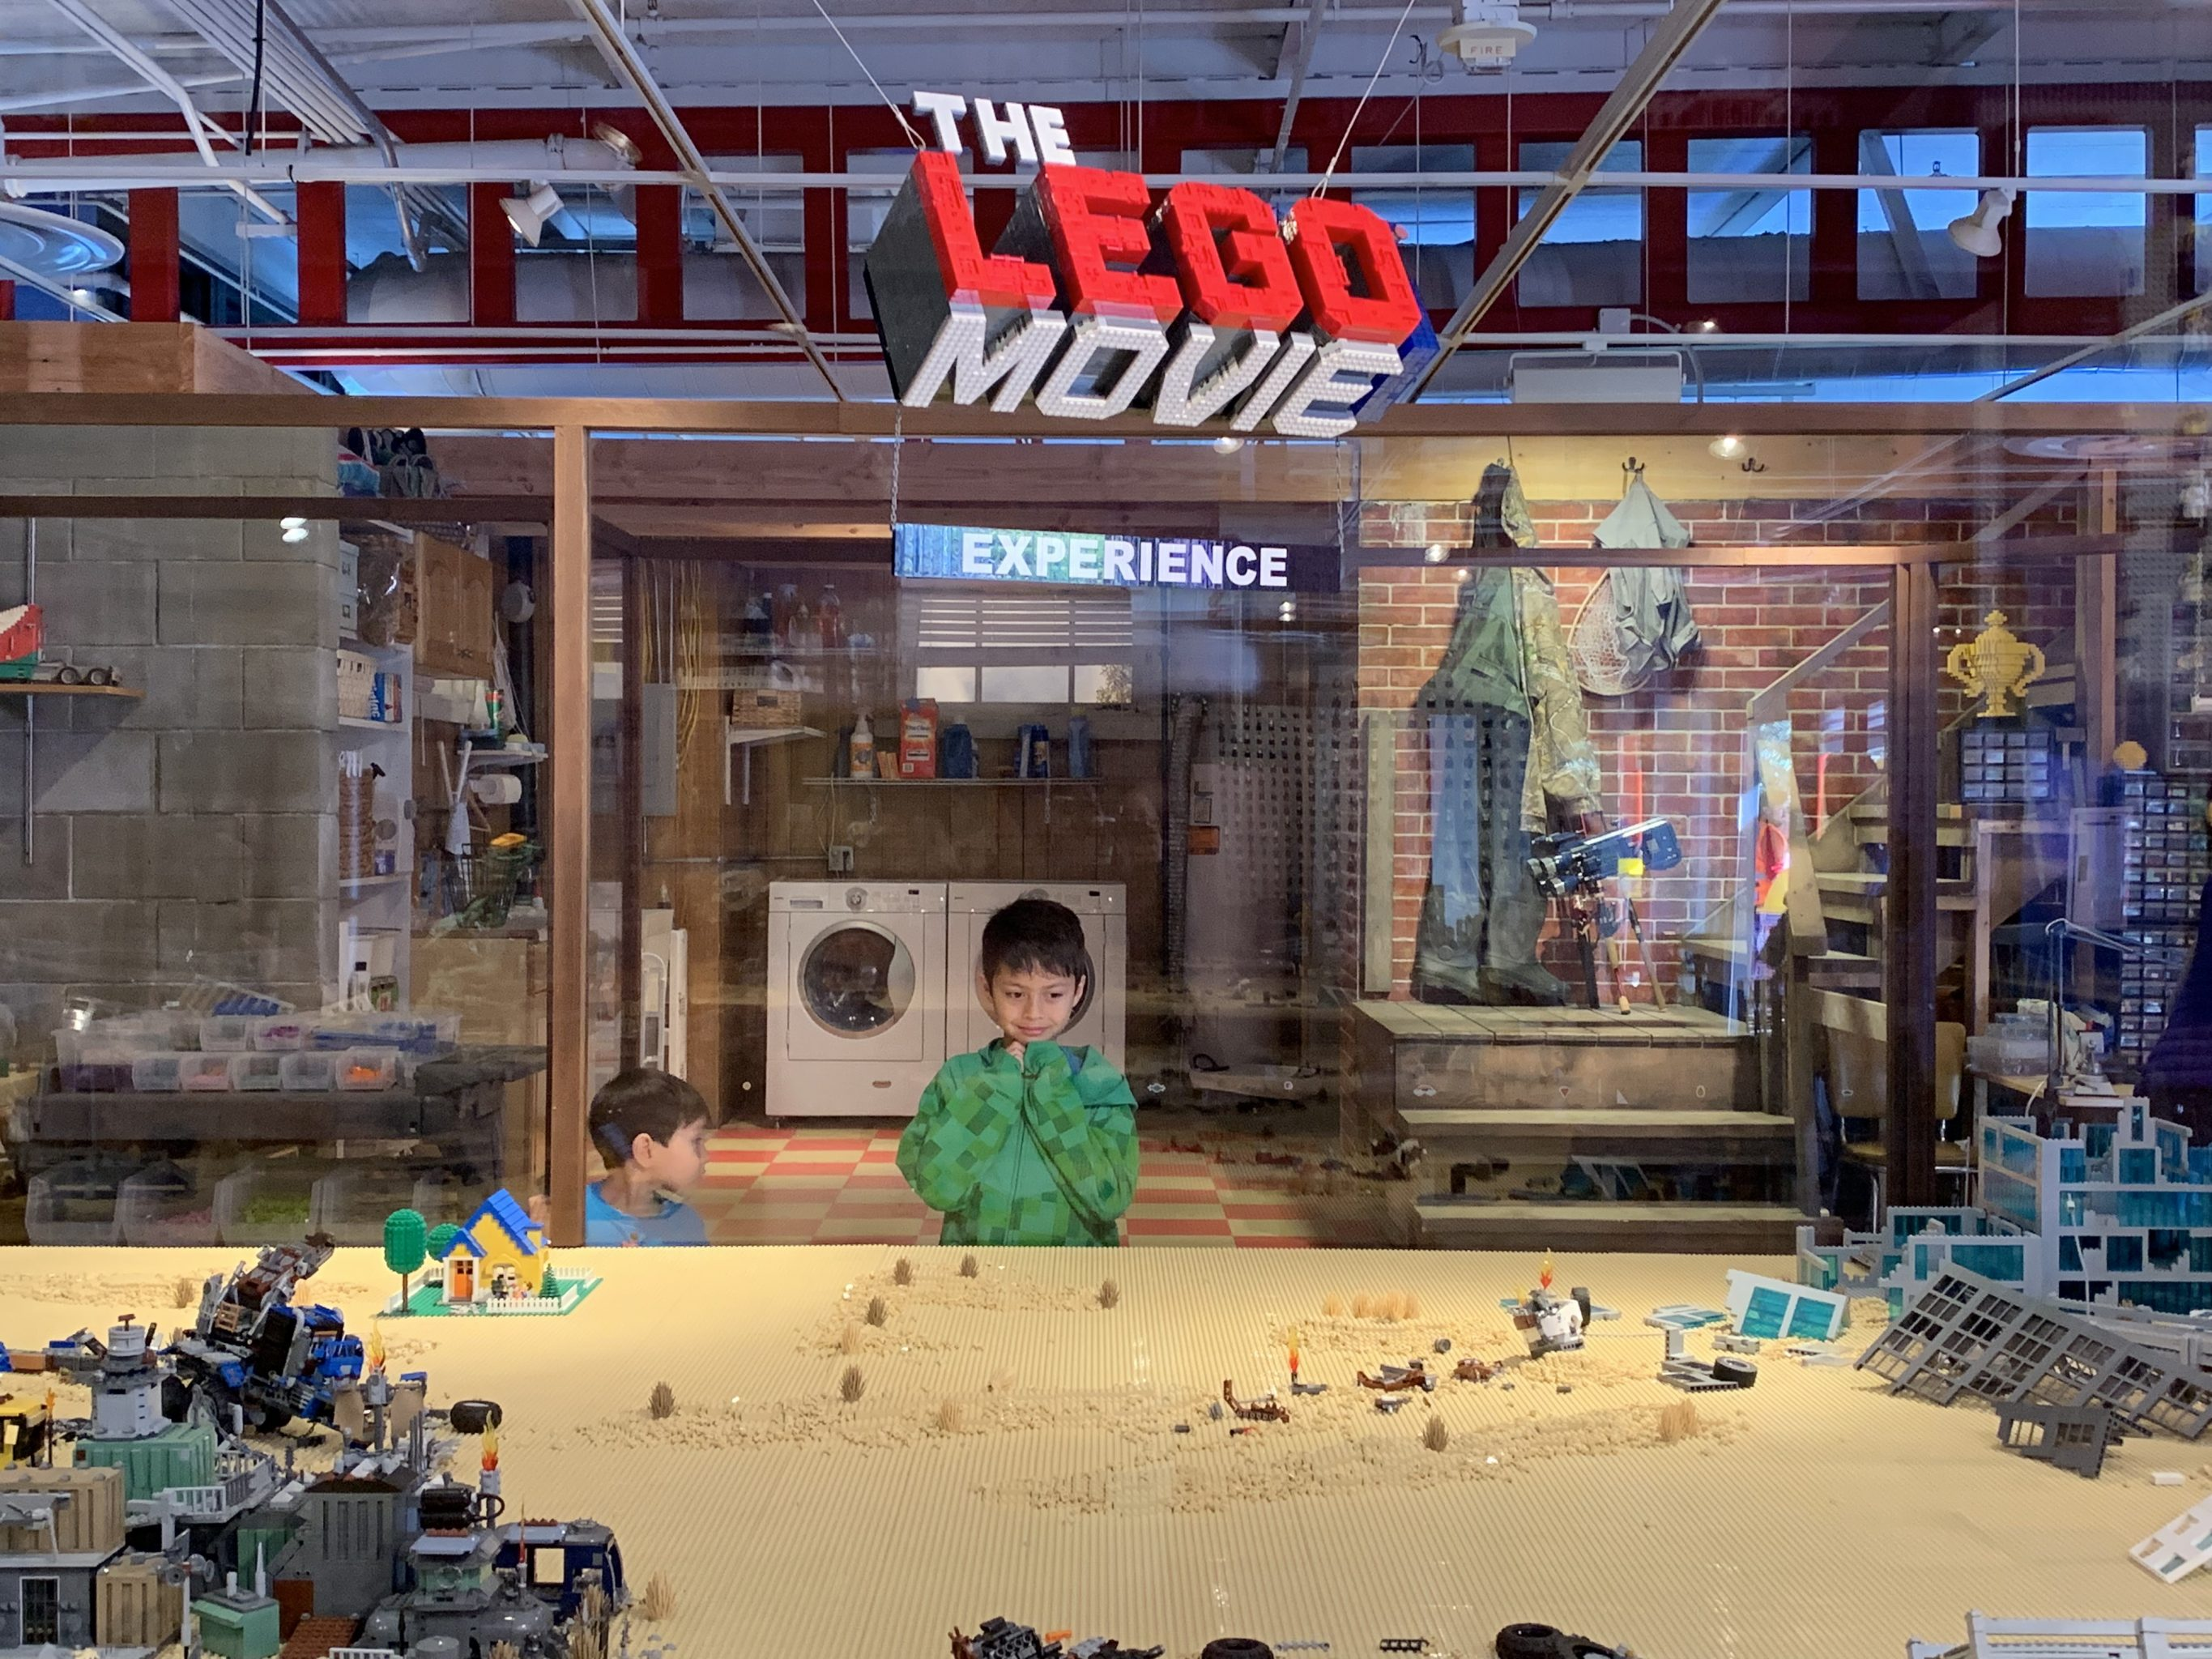 Legoland Ca The Lego Movie 2 Experience Happy Mess Moments